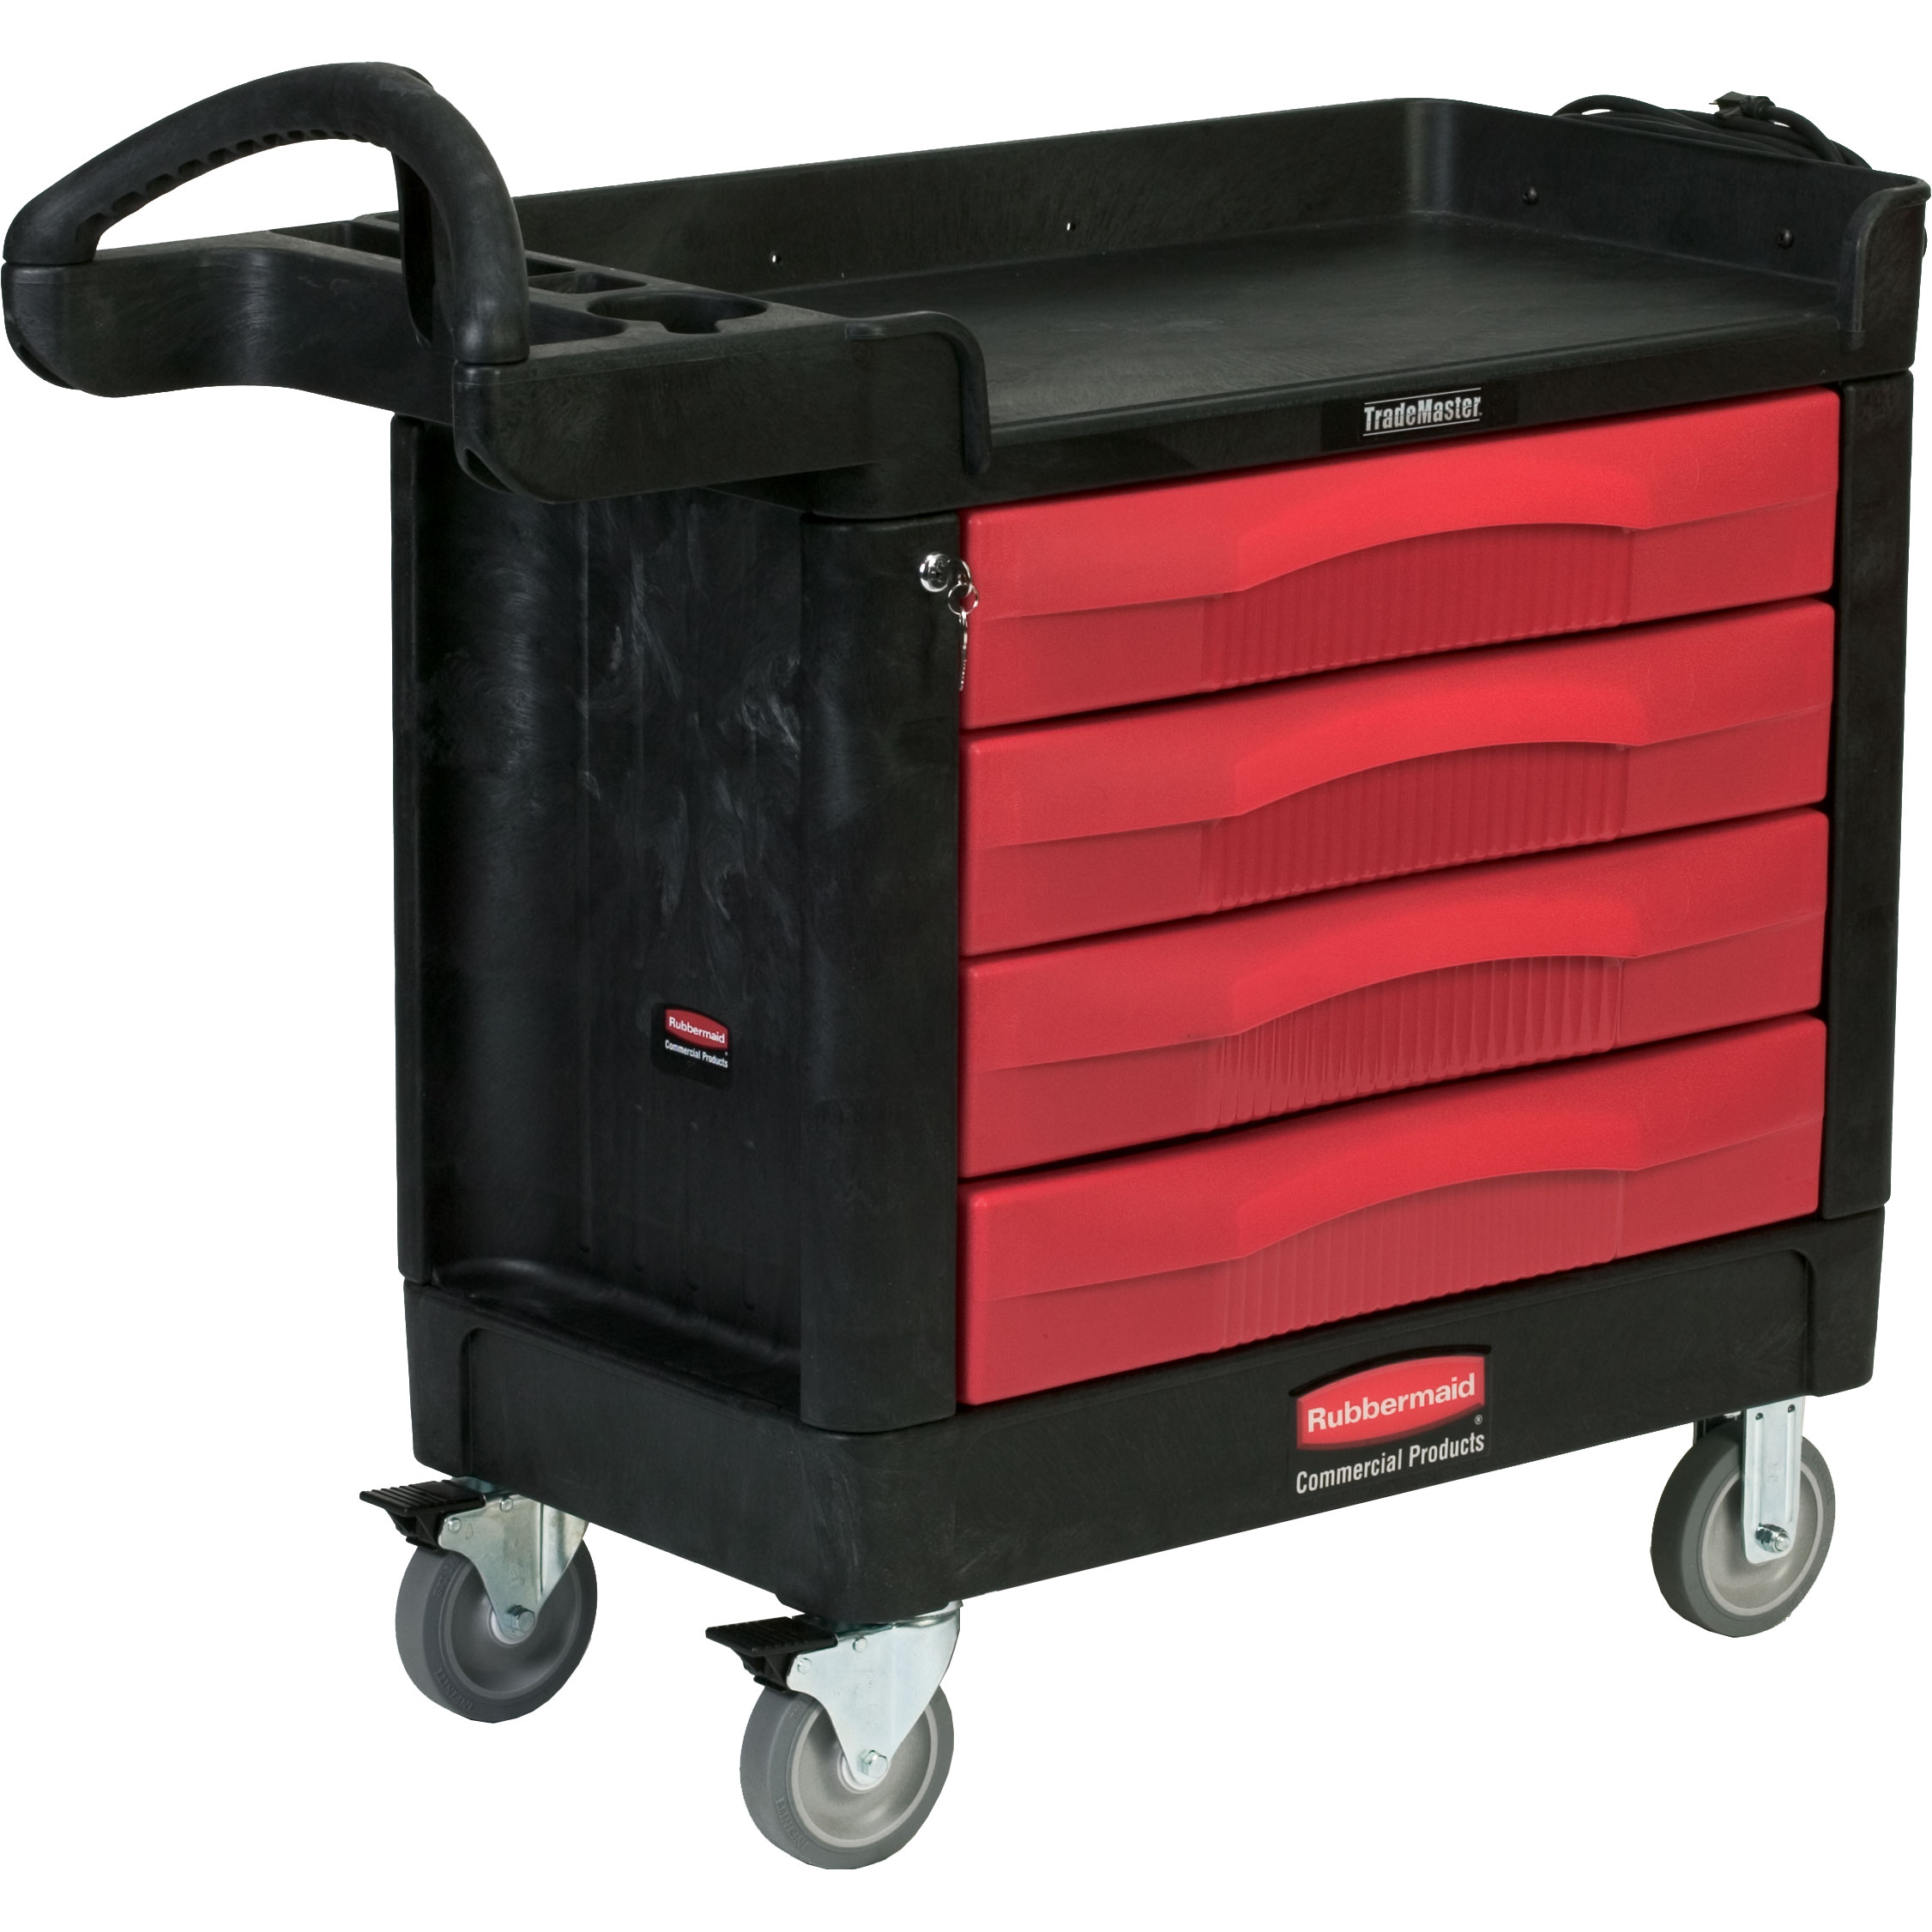 222225852400 moreover Garden Cart Wheels as well TradeMaster Cart With 4 Drawers p 2348 also Cart 20clipart 20janitorial also Rubbermaid Instrument Cart Gray 40 3 5 W X 20 D 37 4 5 H In 300 Lbs 1333892 Electroni. on rubbermaid utility carts